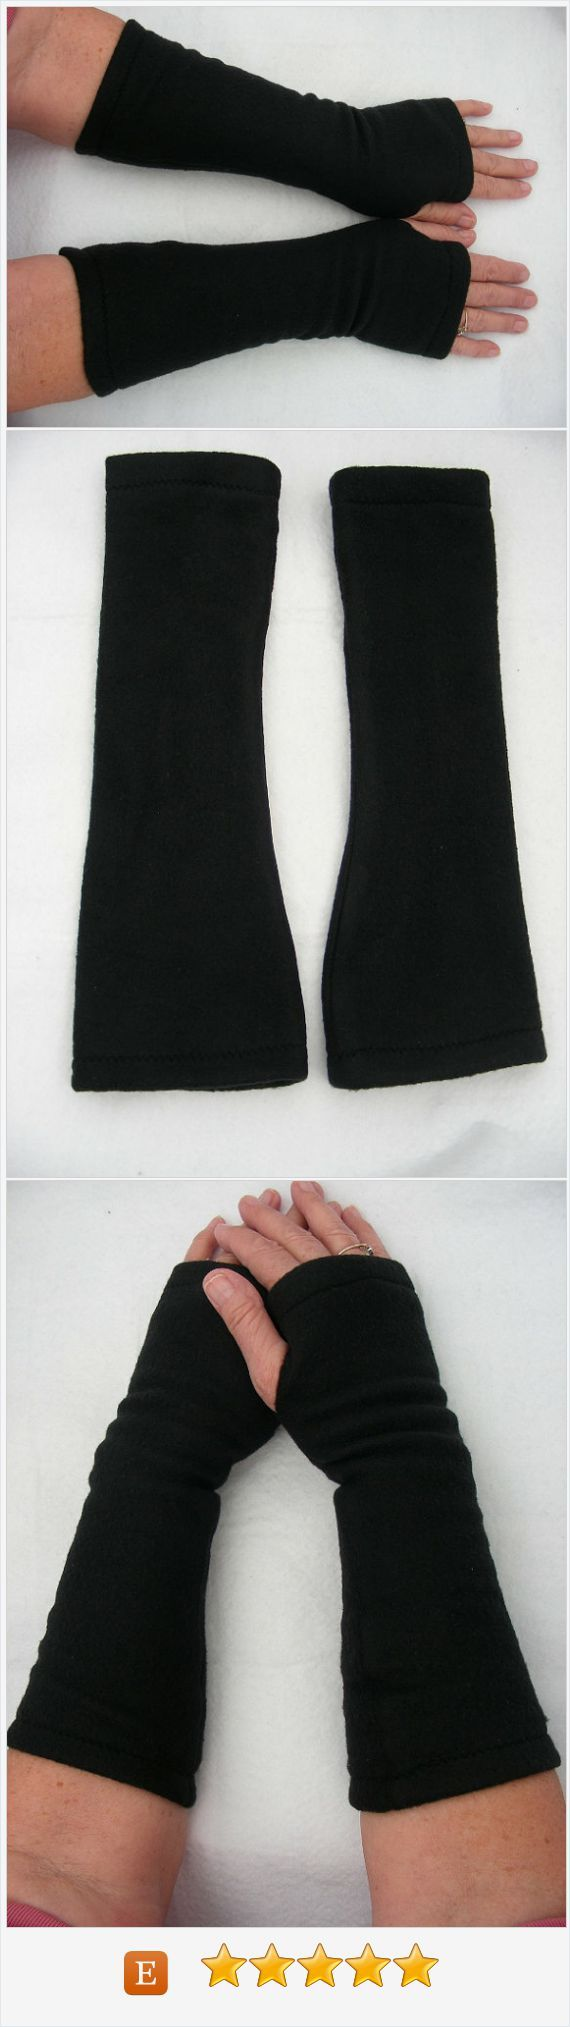 Mens fleece gloves xxl - Black Fleece Fingerless Gloves Black Arm Warmers Fleece Gloves Texting Gloves Cycling